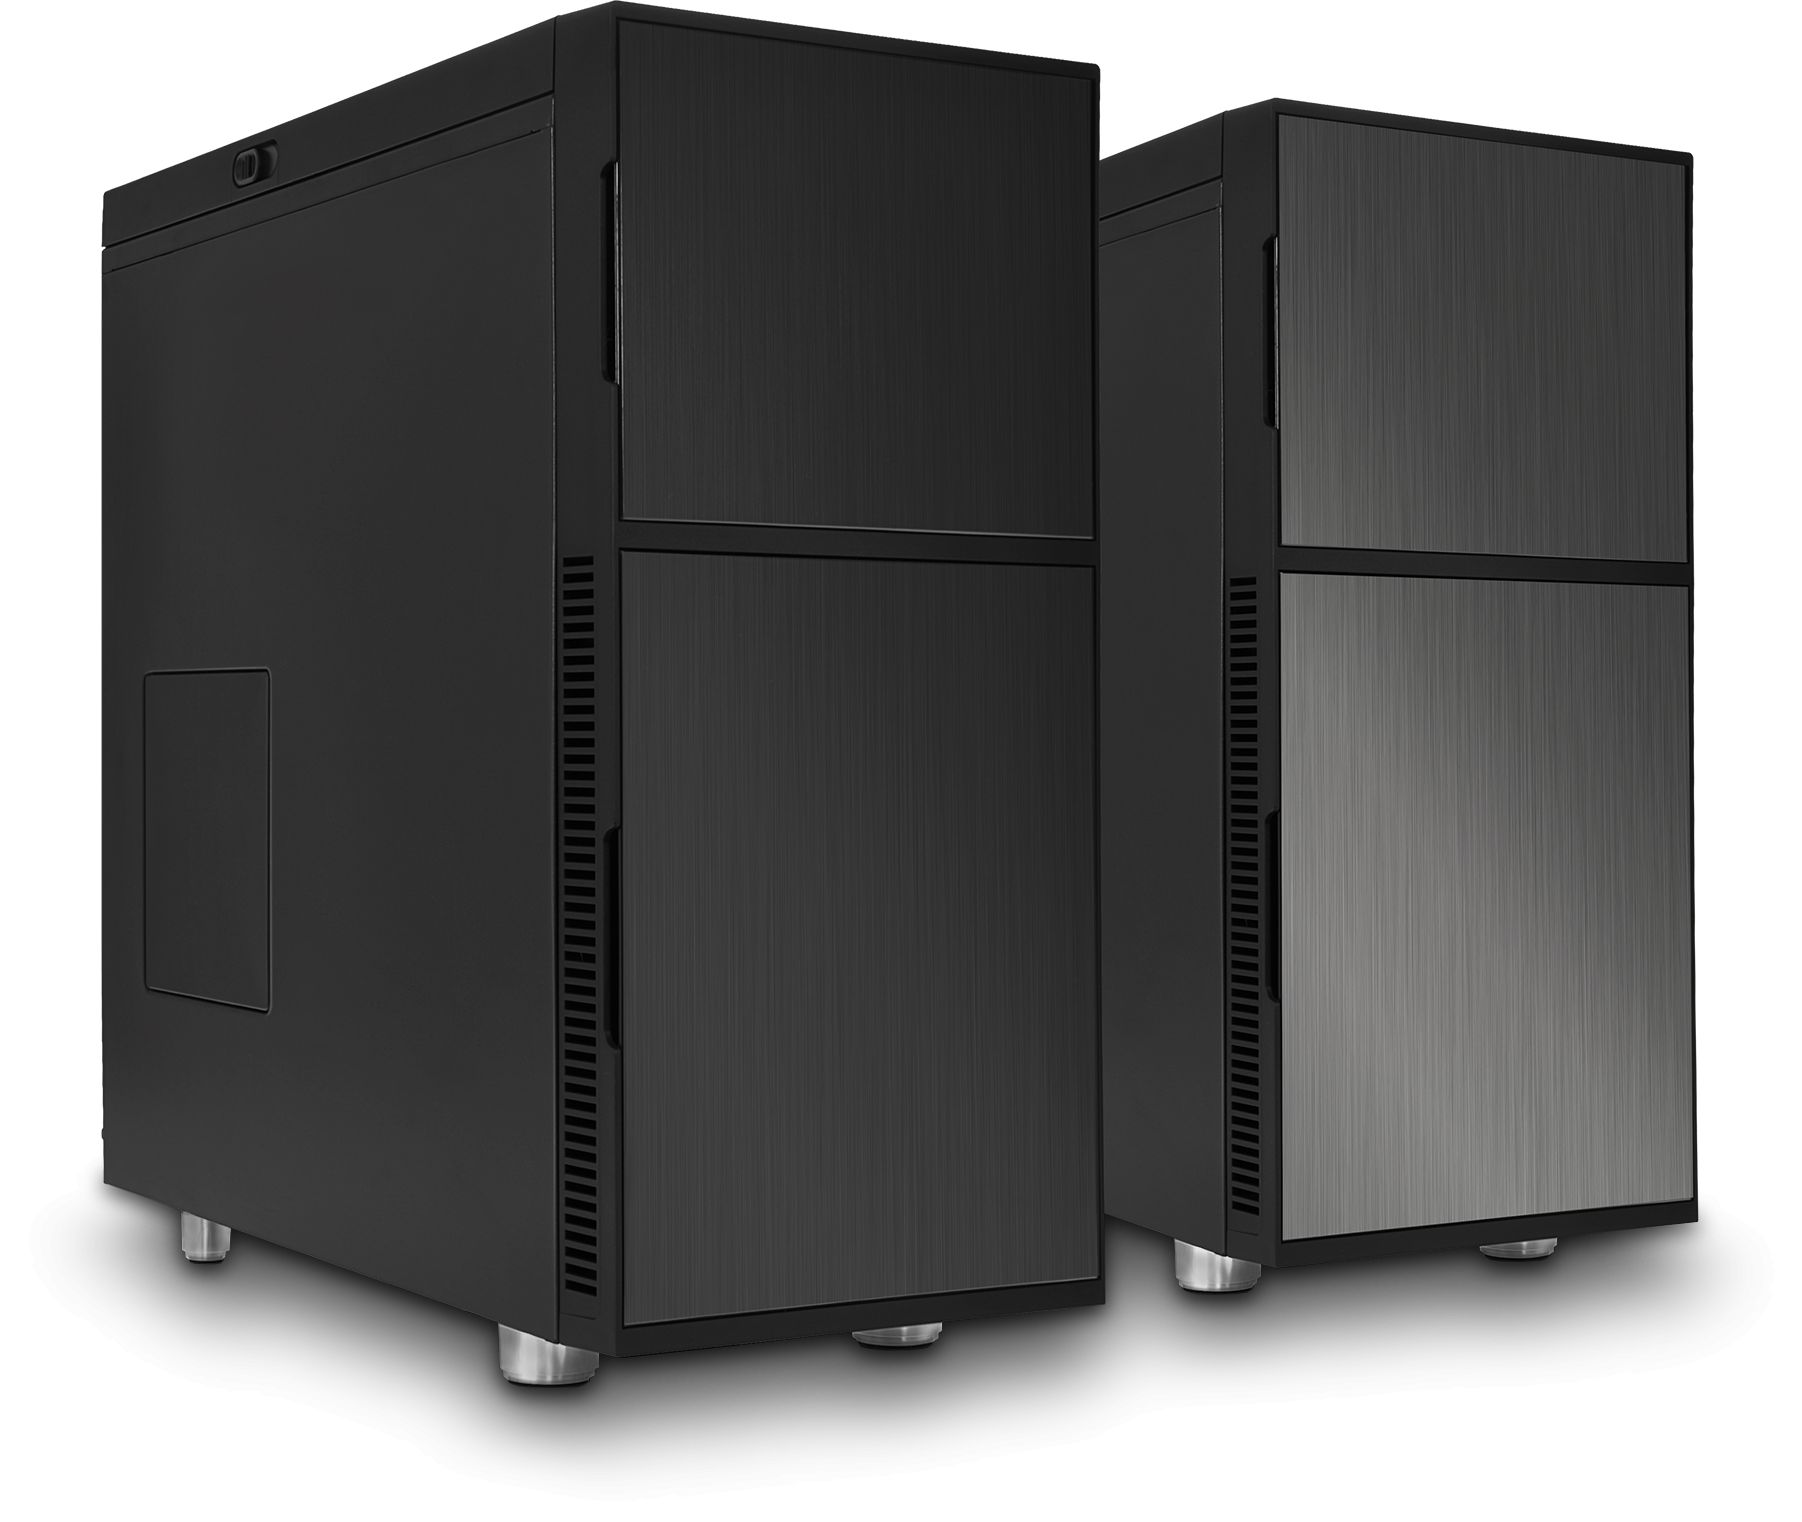 Case Pc Deep Silence 1 Black Rev B Ultimate Low Noise Pc Atx Case